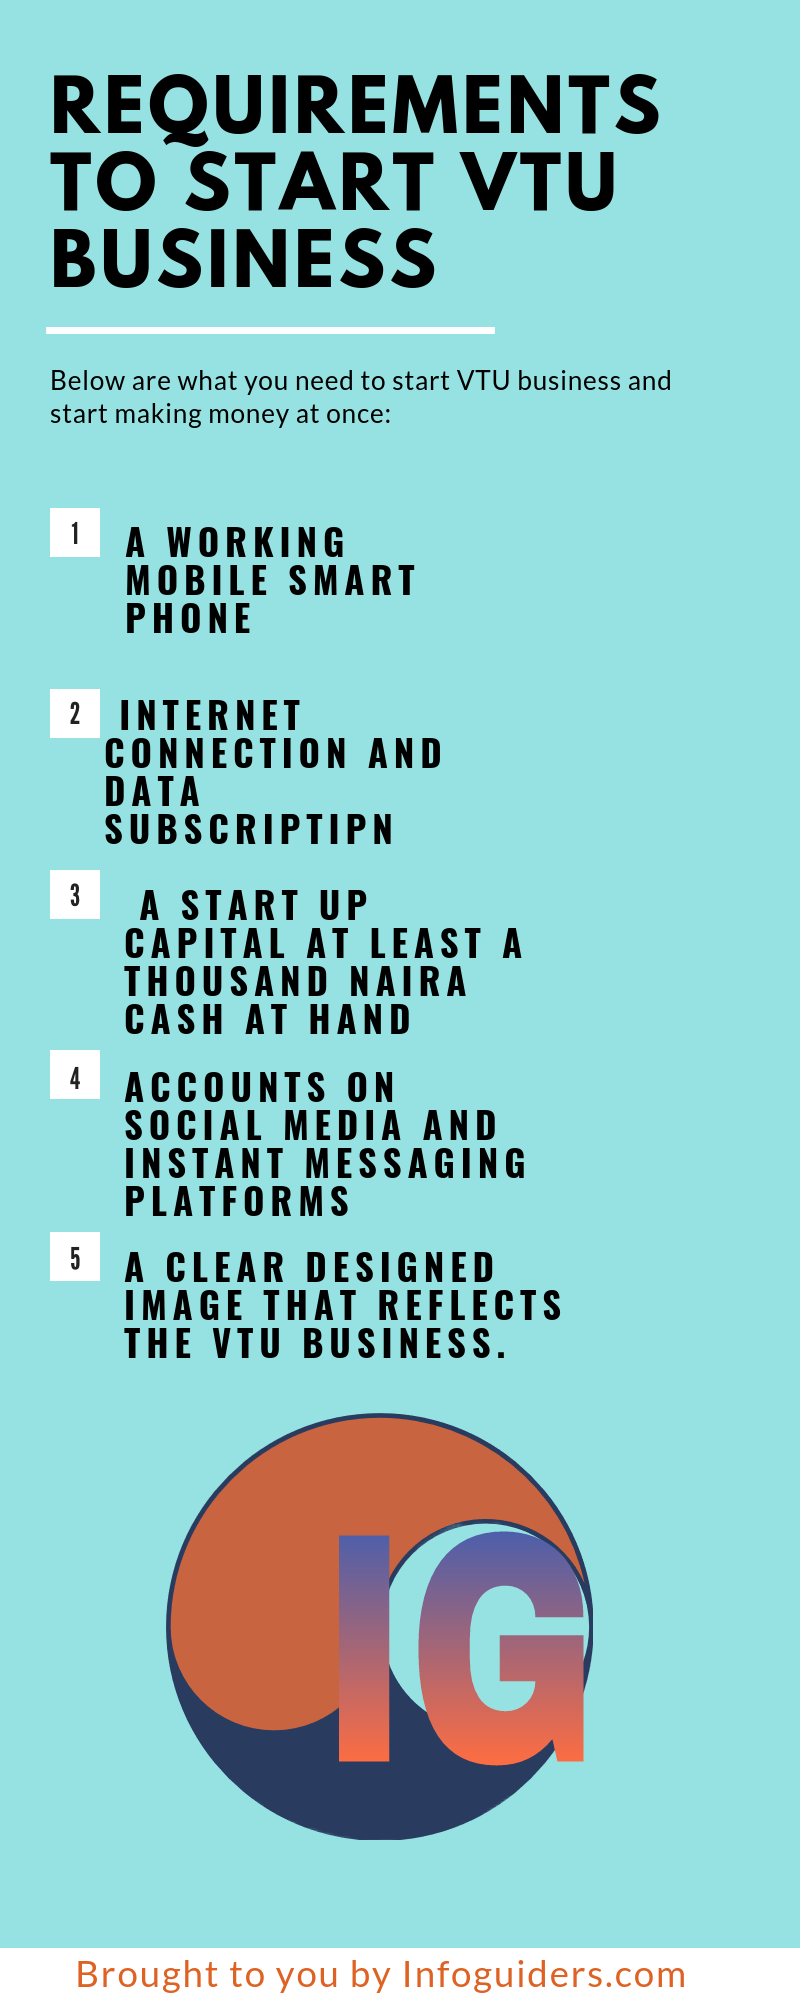 Requirements to start vtu business